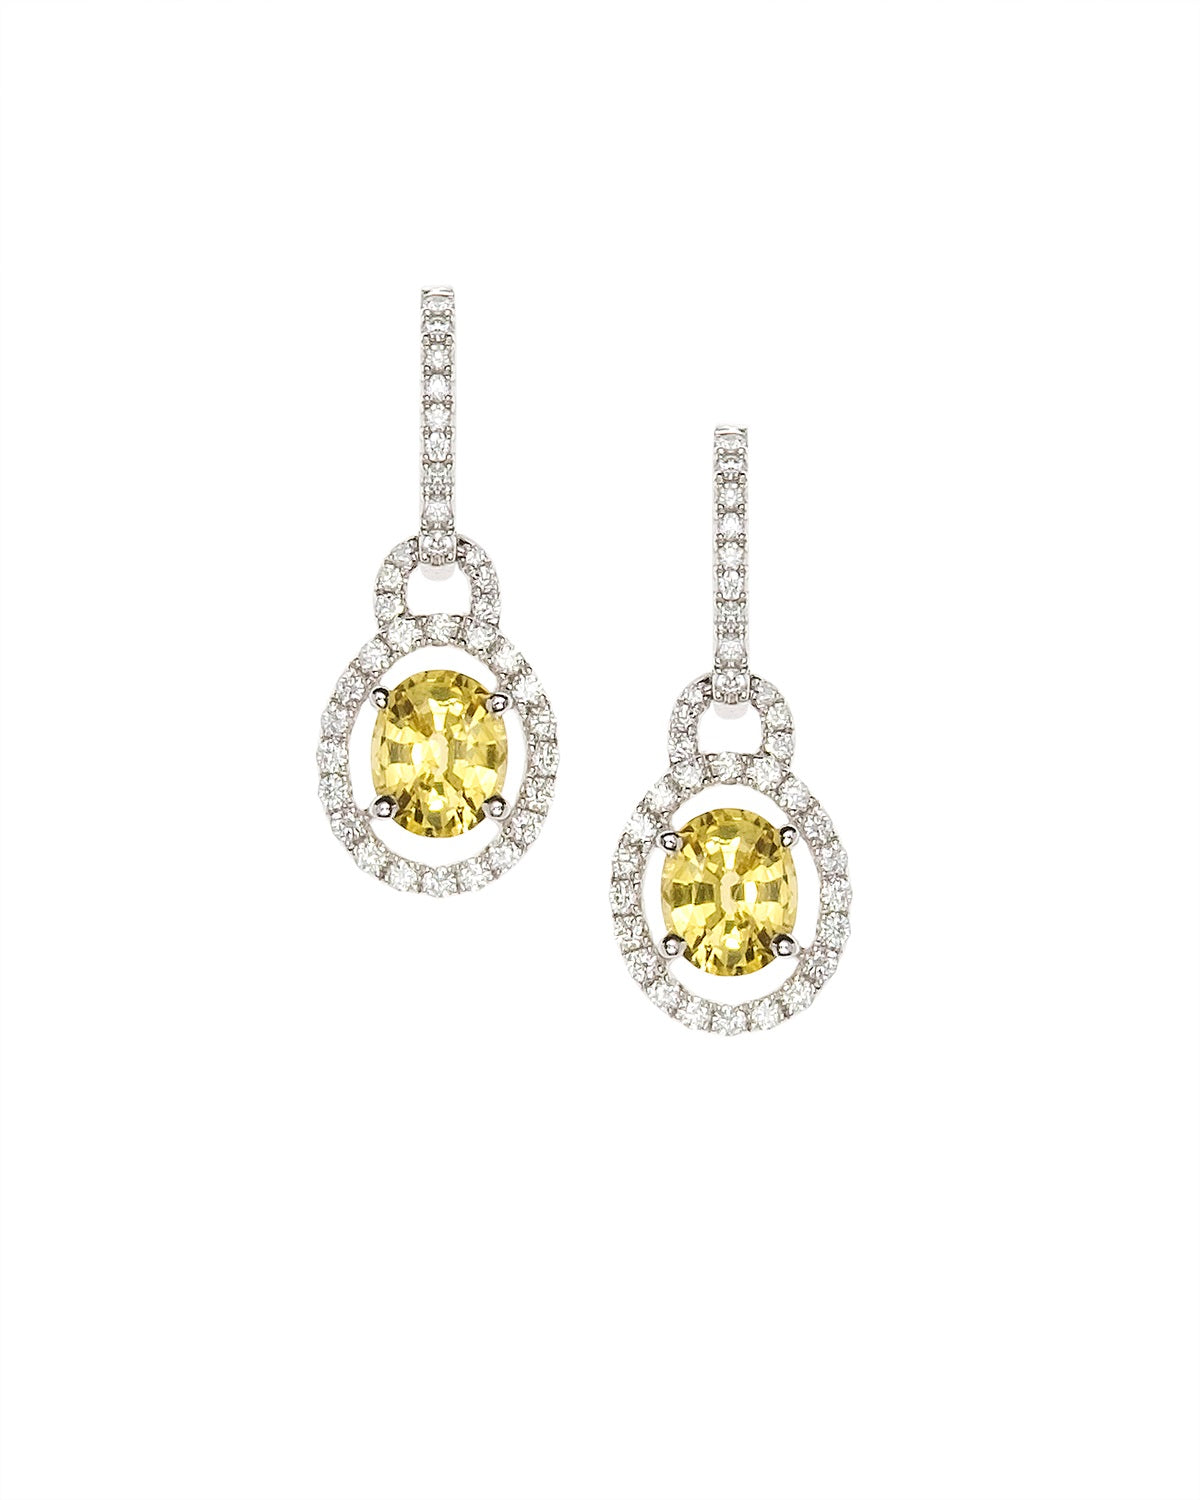 'Sunny' natural Yellow Sapphire and Diamond Earrings in White Gold.